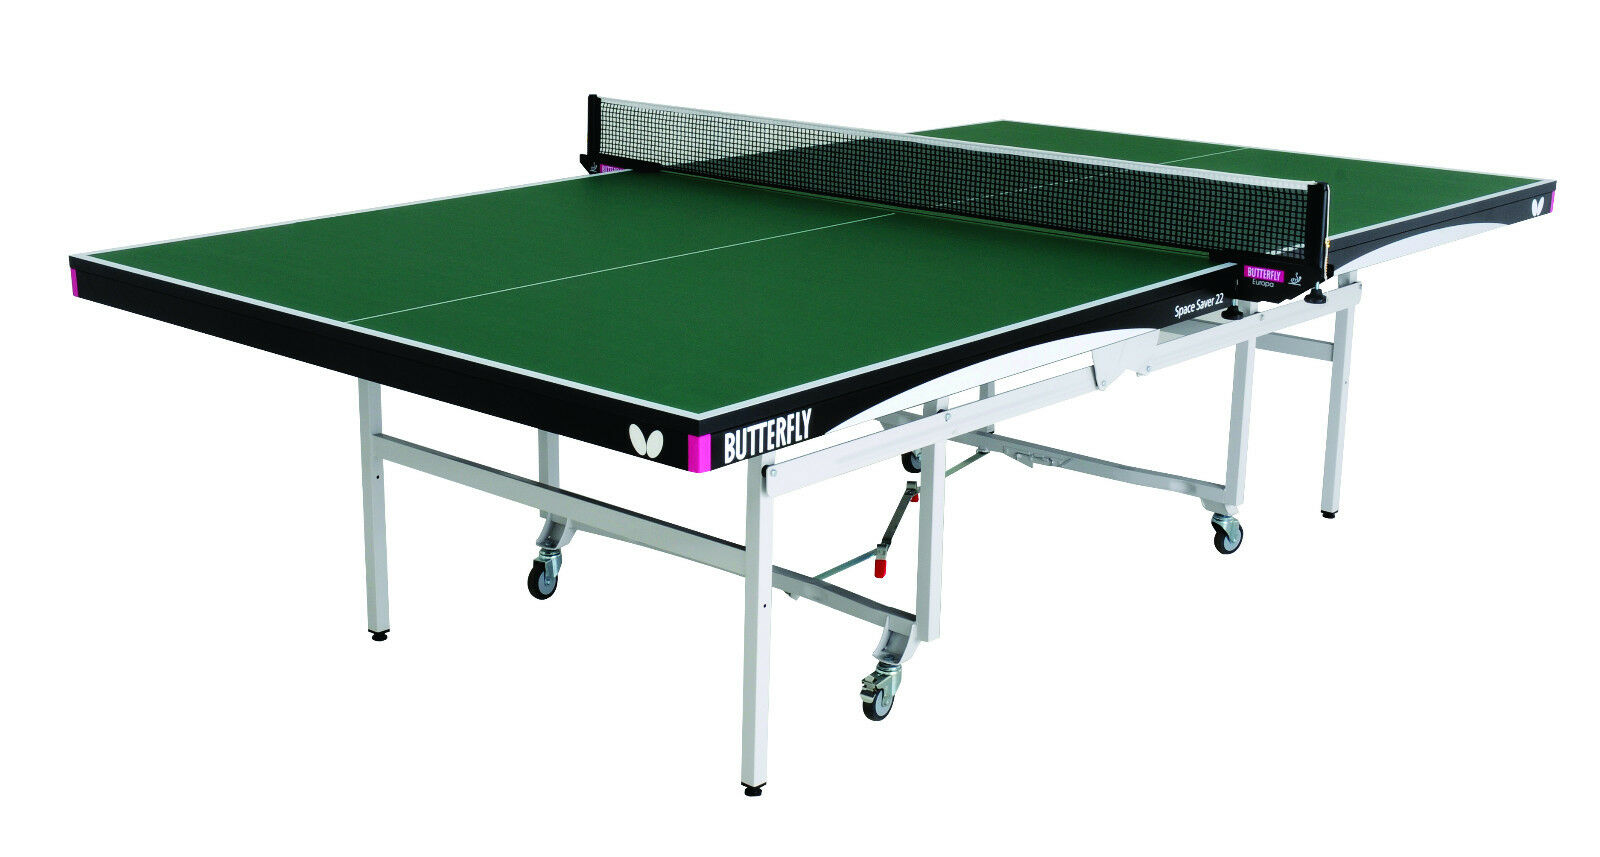 Butterfly Space Saver 25 Table Tennis Table